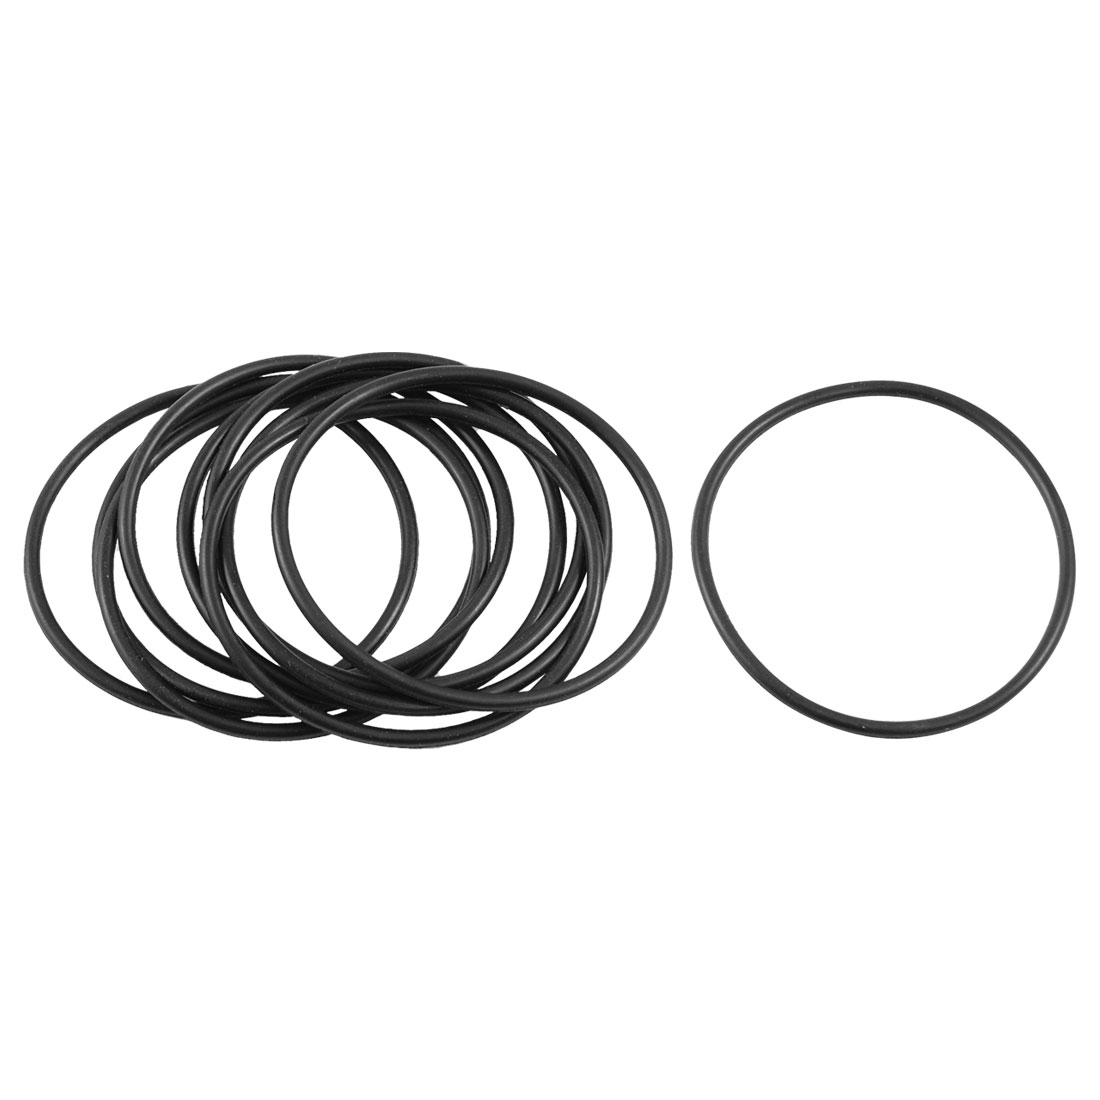 10 Pcs Black Nitrile Rubber O Ring Grommets Seal Washer 40mm x 44mm x 2mm